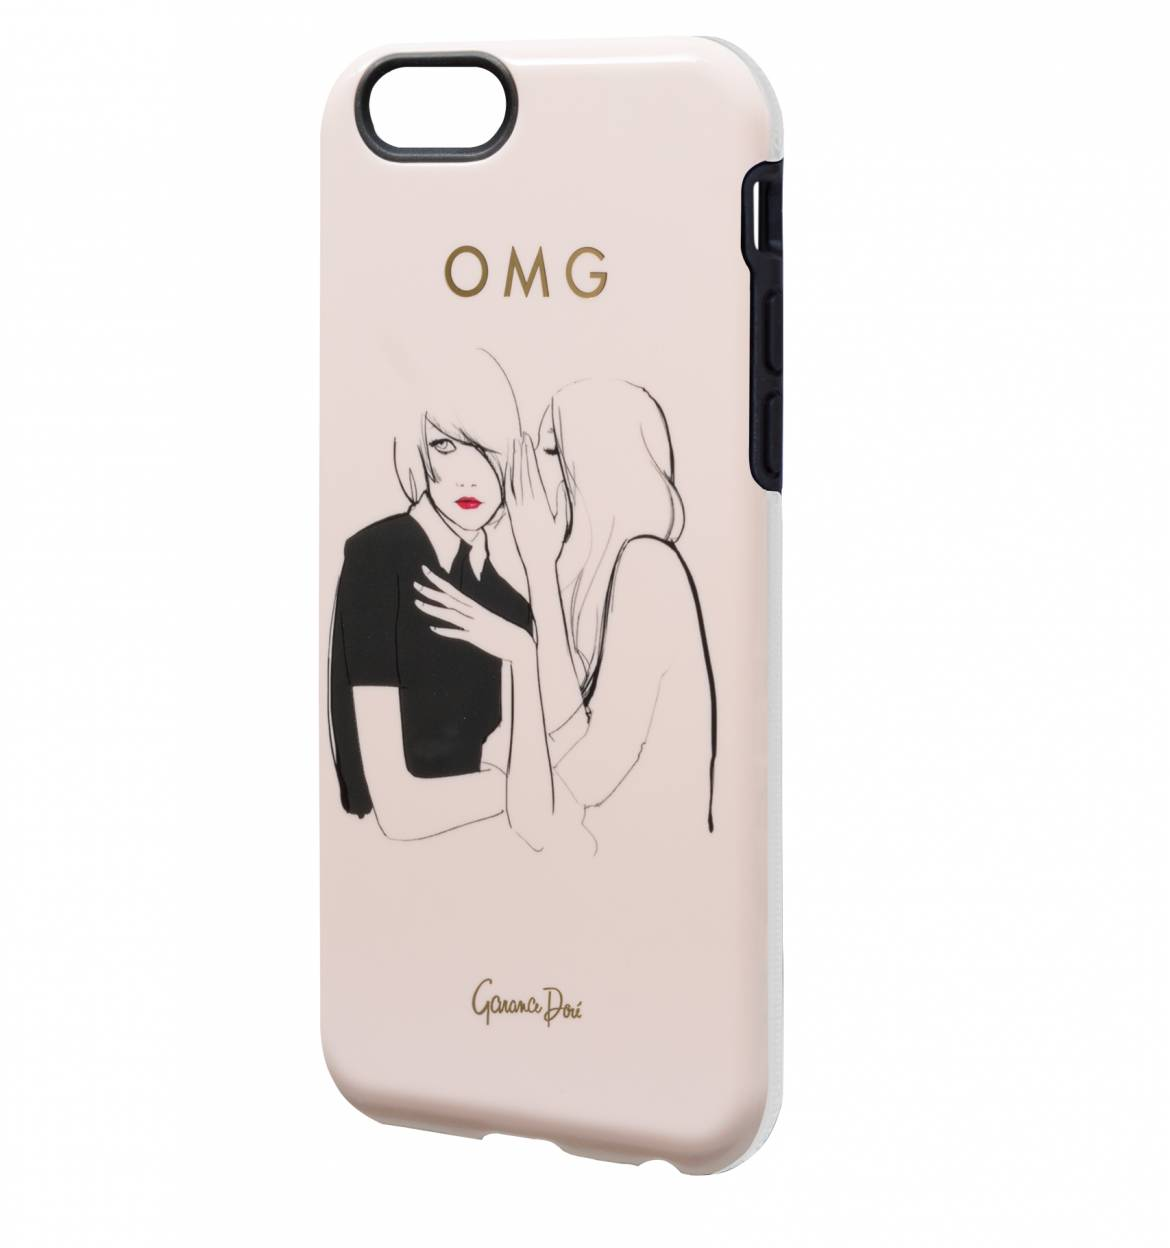 iphone 6 cover illustrated by garance dore gift for girls